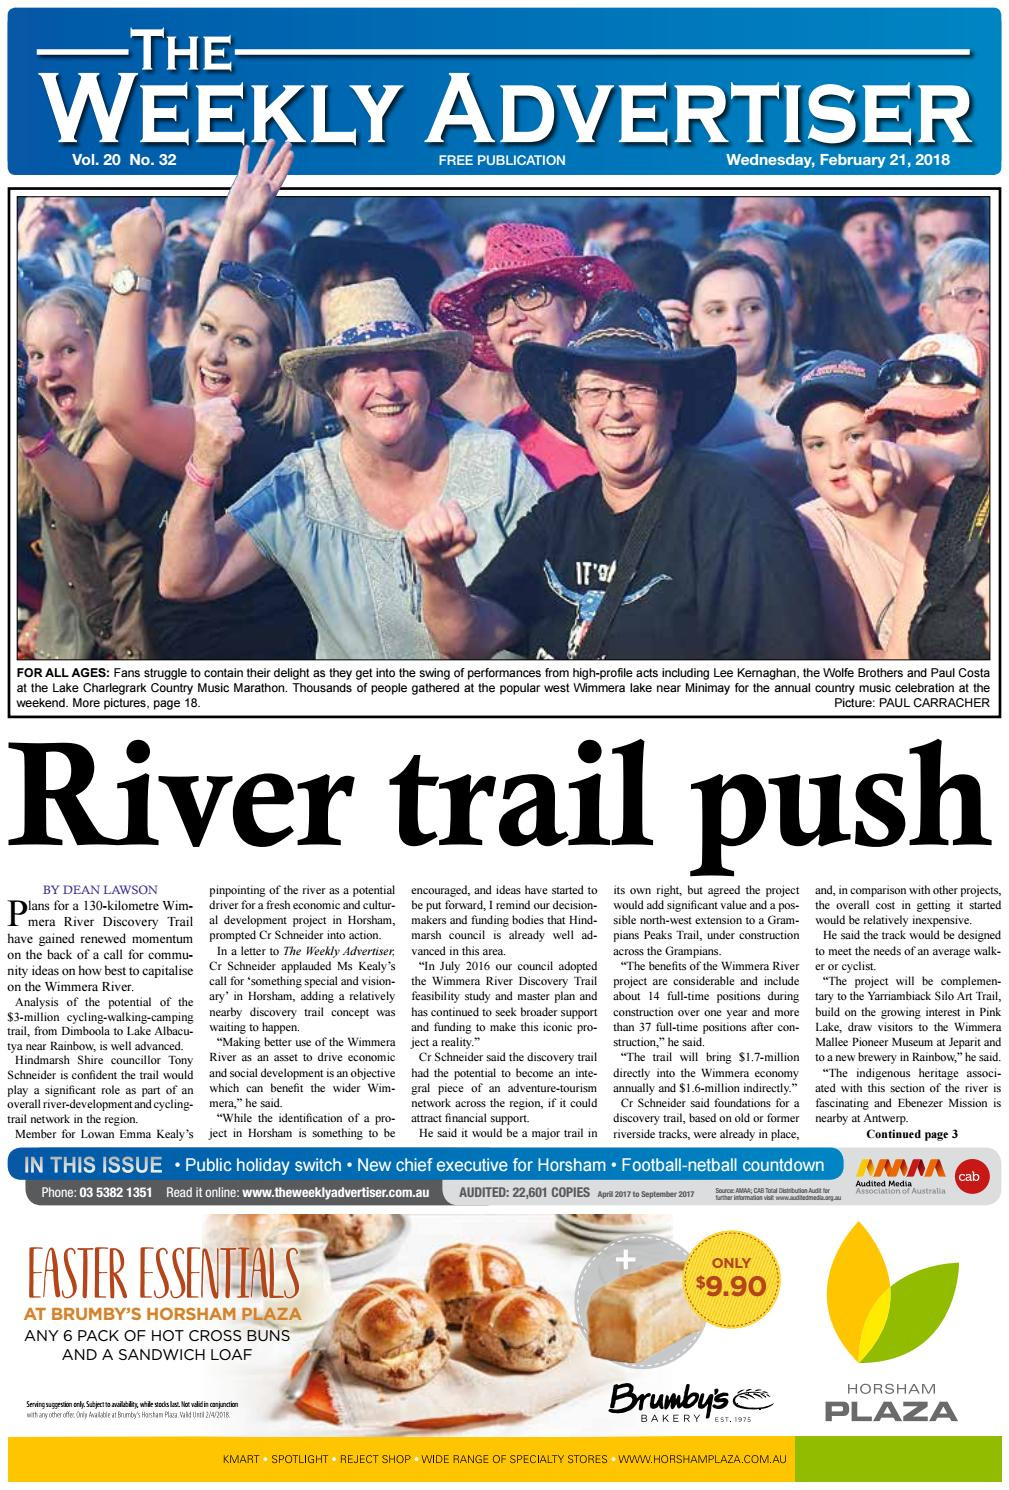 The Weekly Advertiser Wednesday February 21 2018 By The Weekly